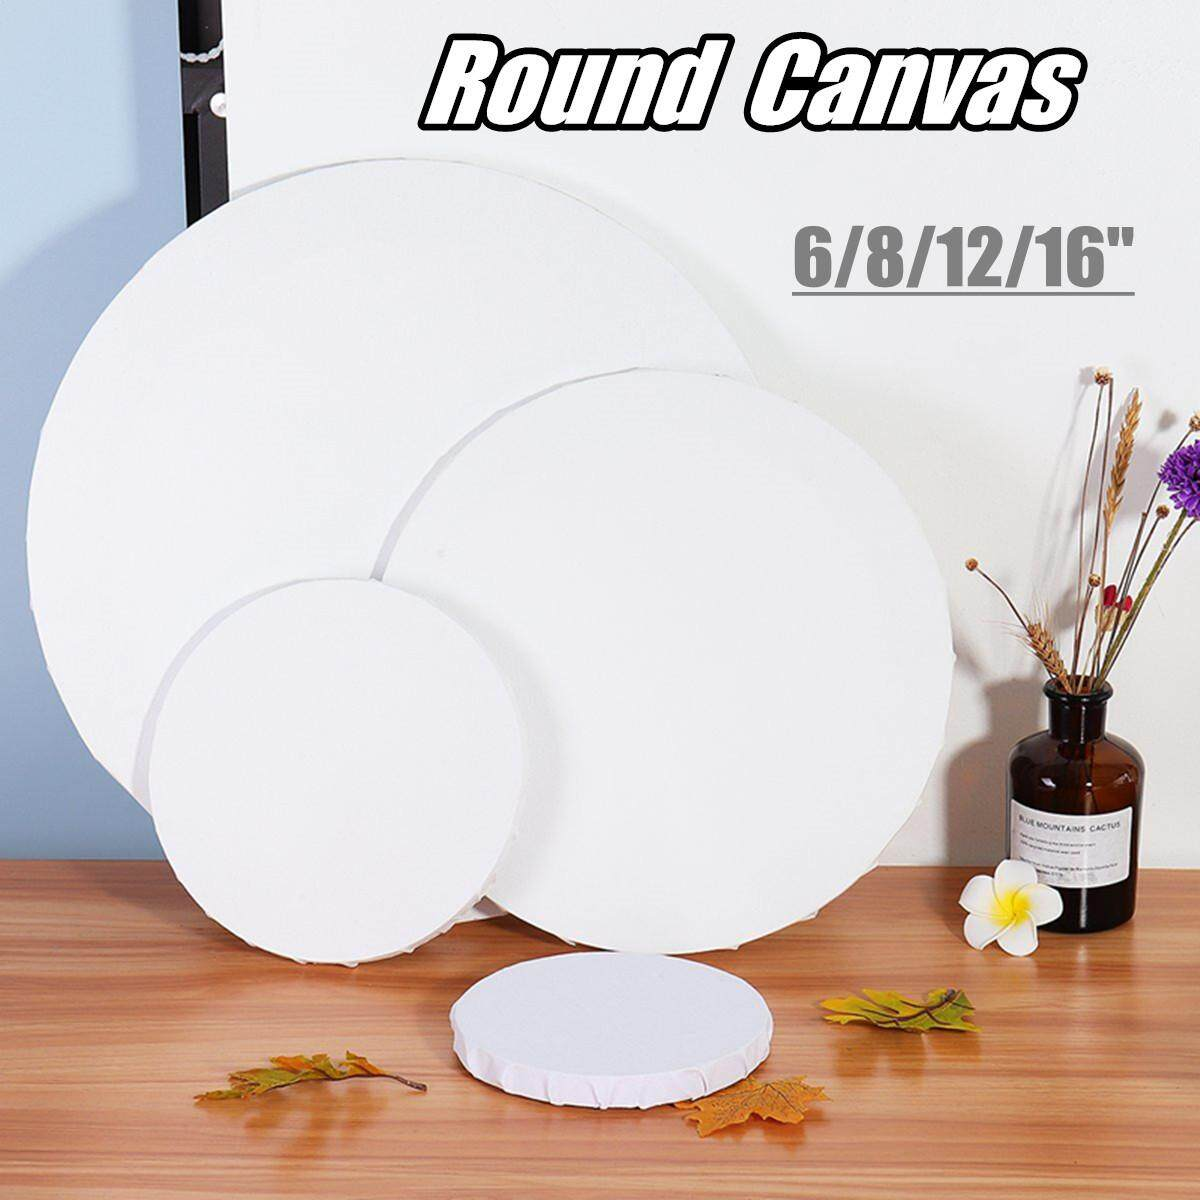 Wooden Frame Blank Round Canvas Boards Diy Acrylic Oil Paintings#40cm By Glimmer.